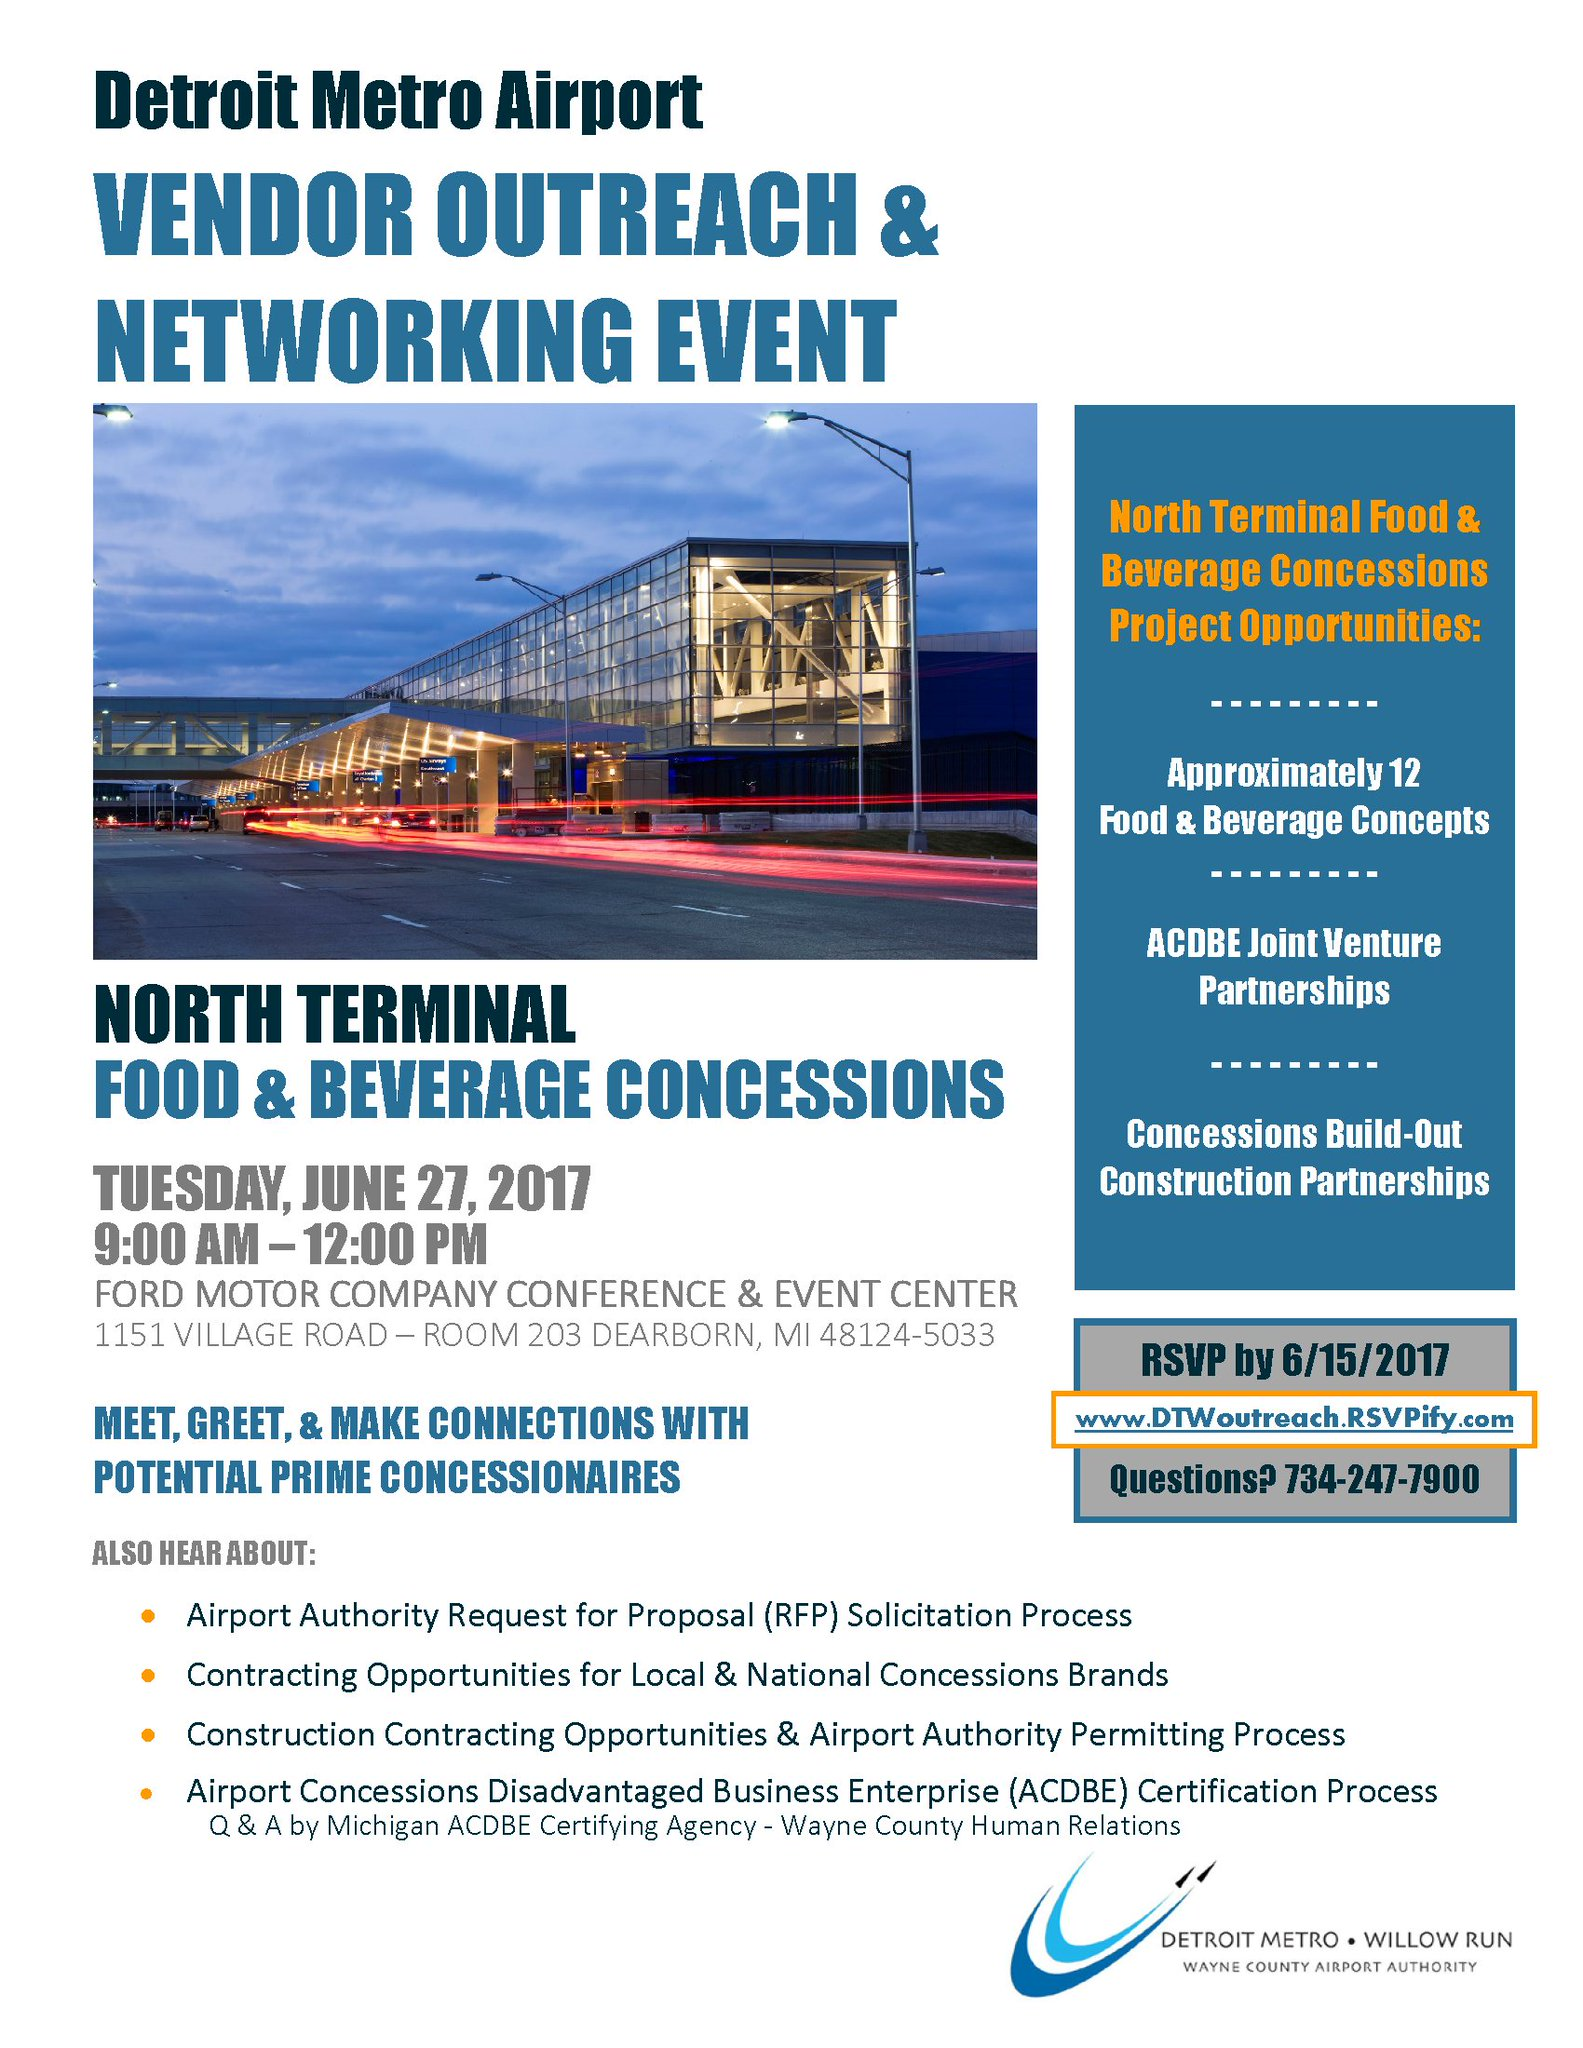 Dtw airport on twitter its the final day to rsvp for detroit dtw airport on twitter its the final day to rsvp for detroit metro airports vendor outreach networking event xflitez Choice Image